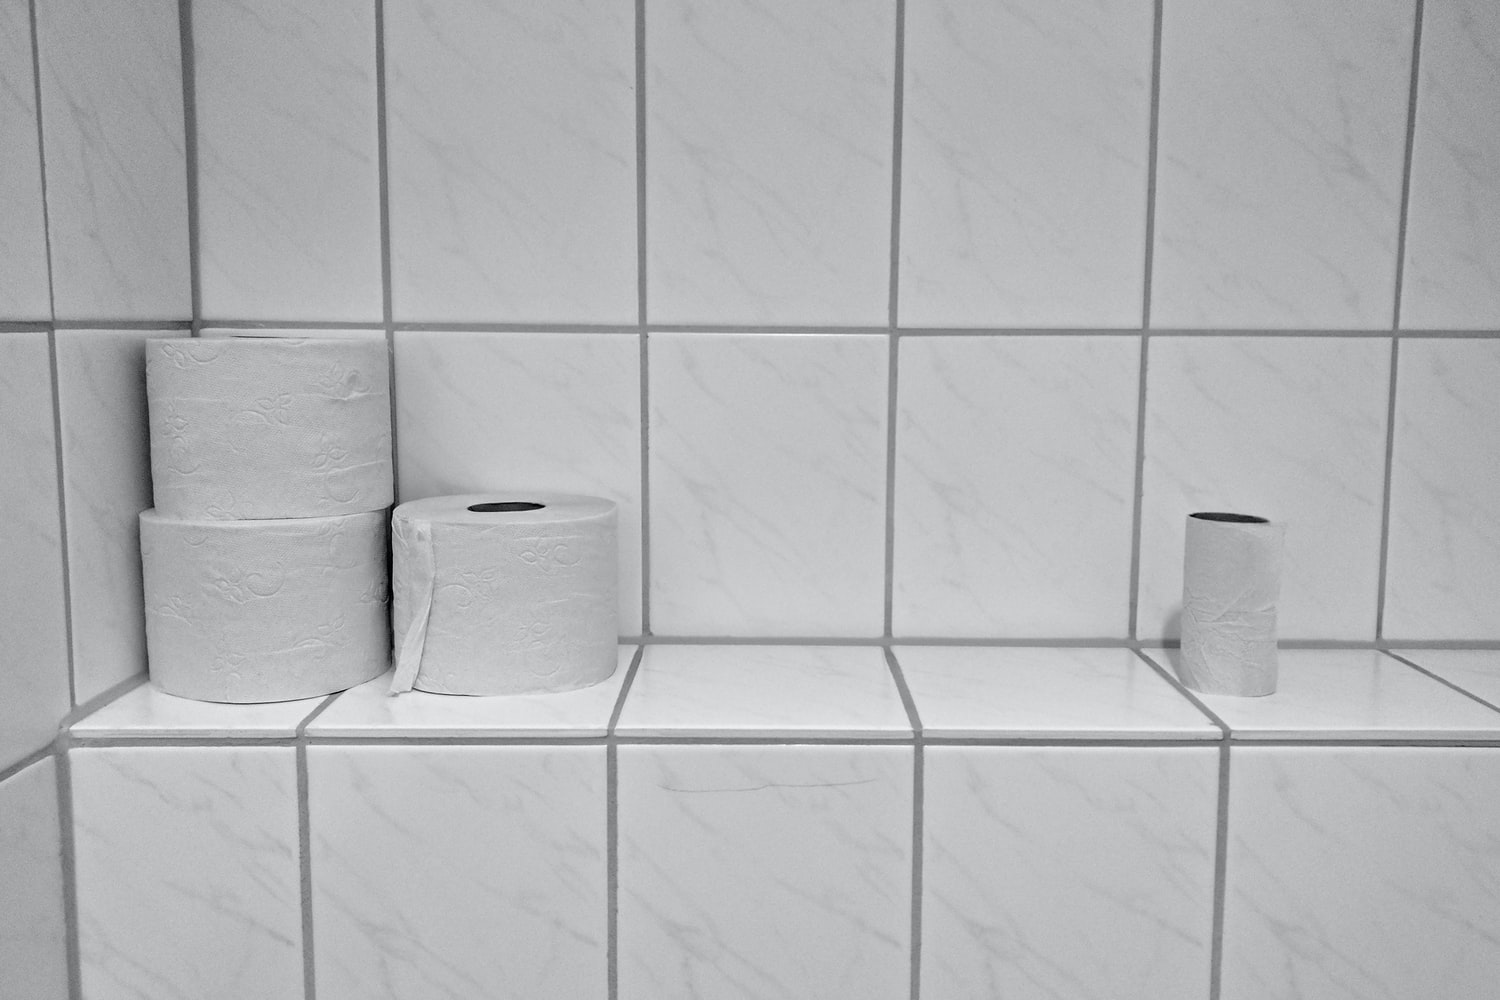 toilet papers placed on a bathroom wall